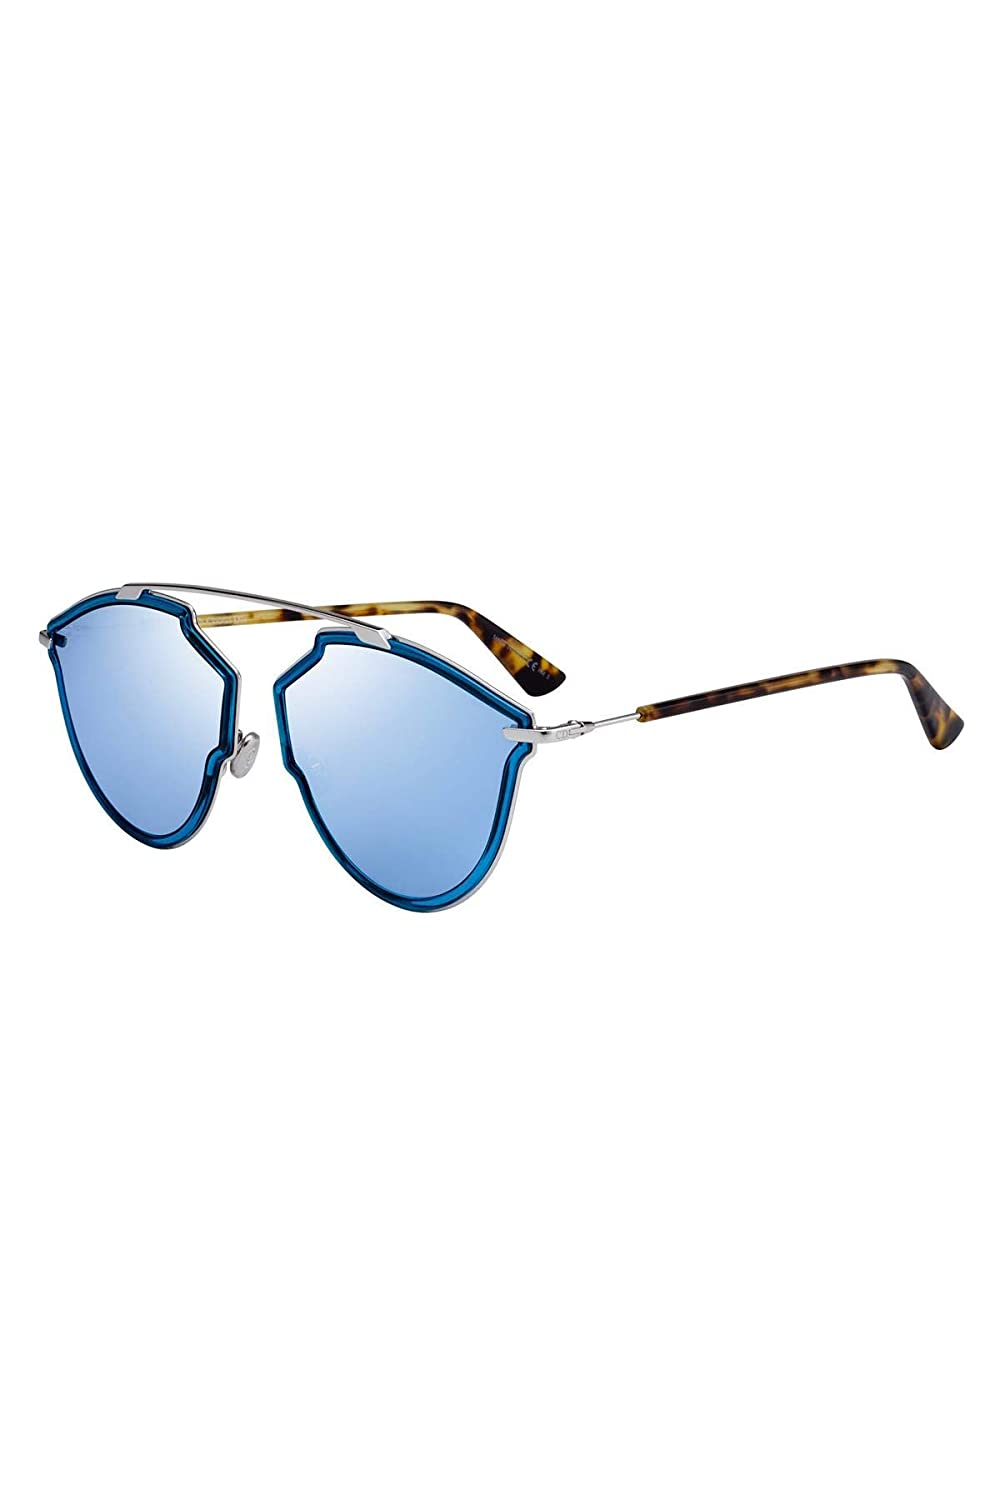 Amazon.com: Dior DIOR SO REAL RISE BLUE/BLUE 58/17/145 ...